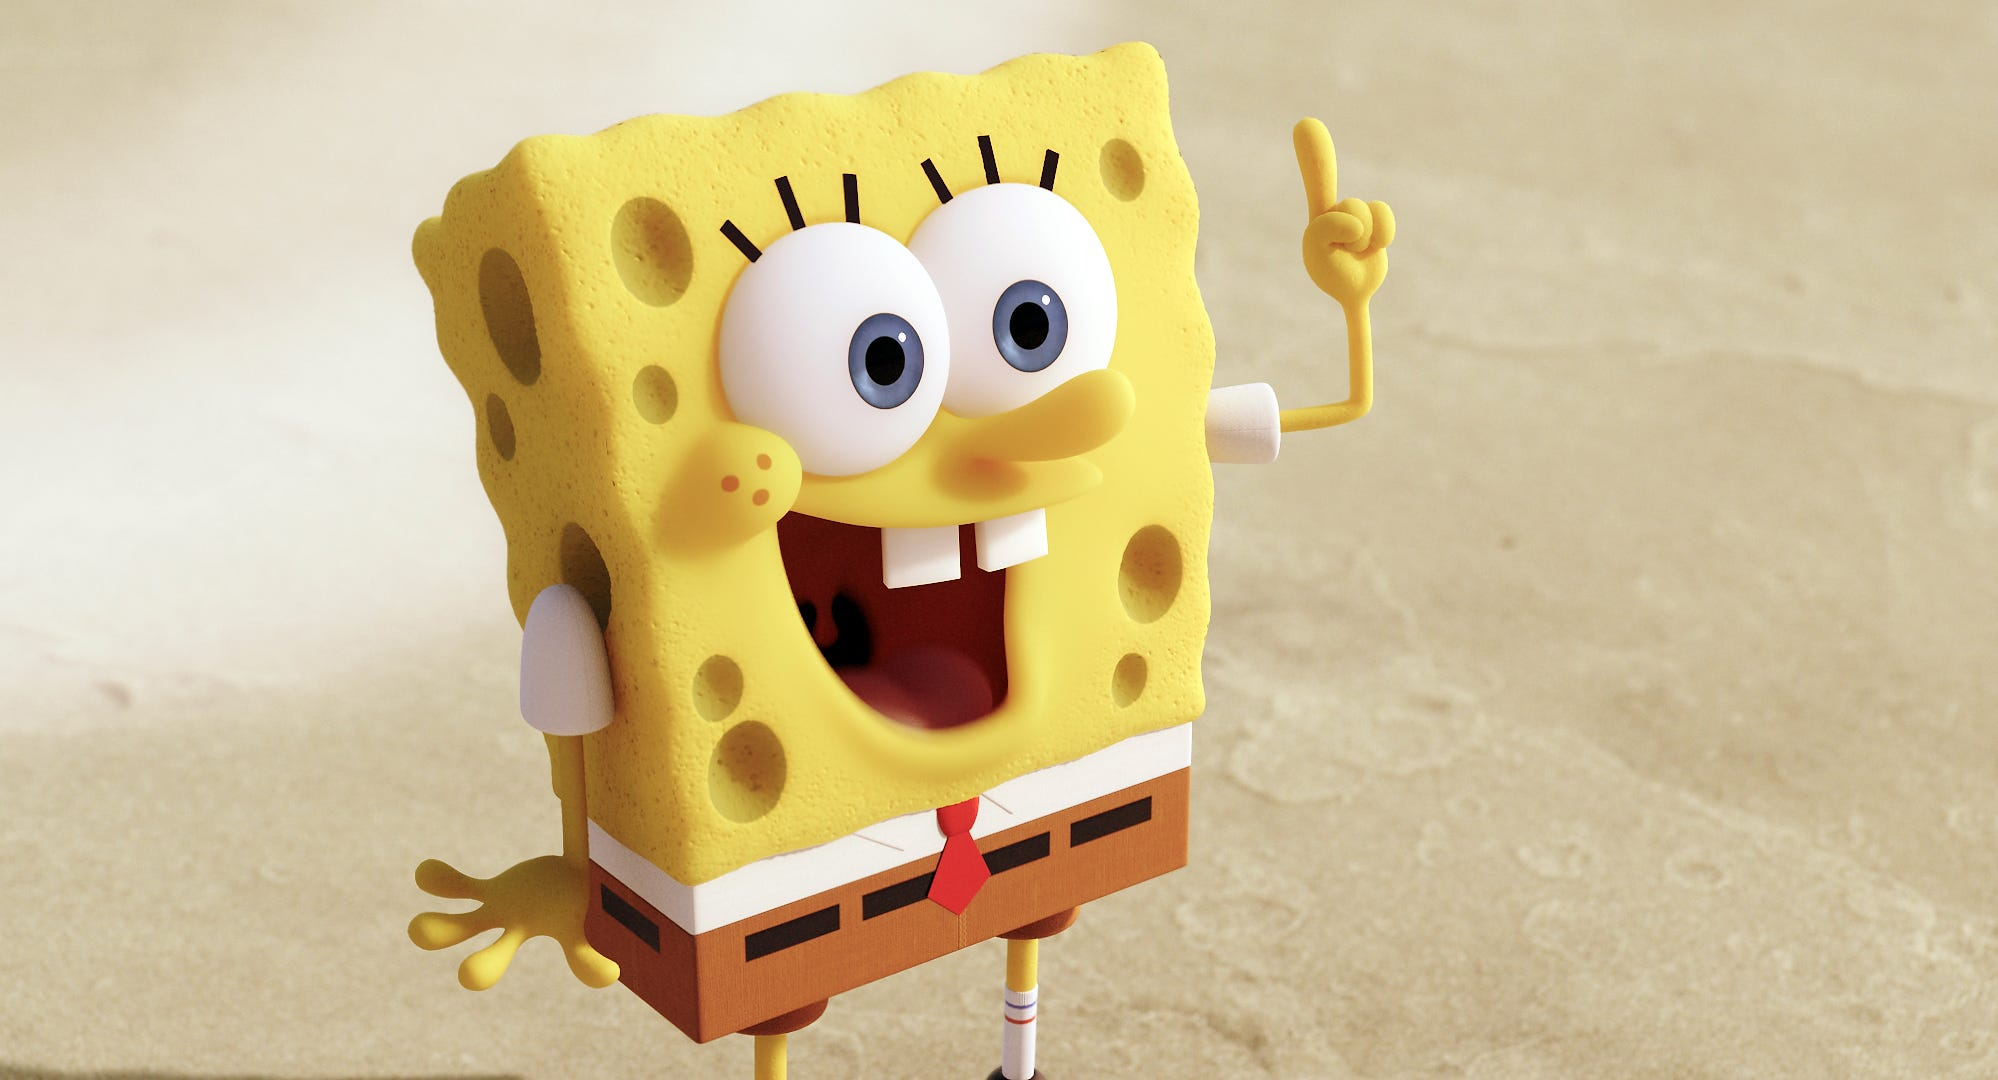 Charter, Viacom fight means cable viewers at risk of losing shows like 'SpongeBob'